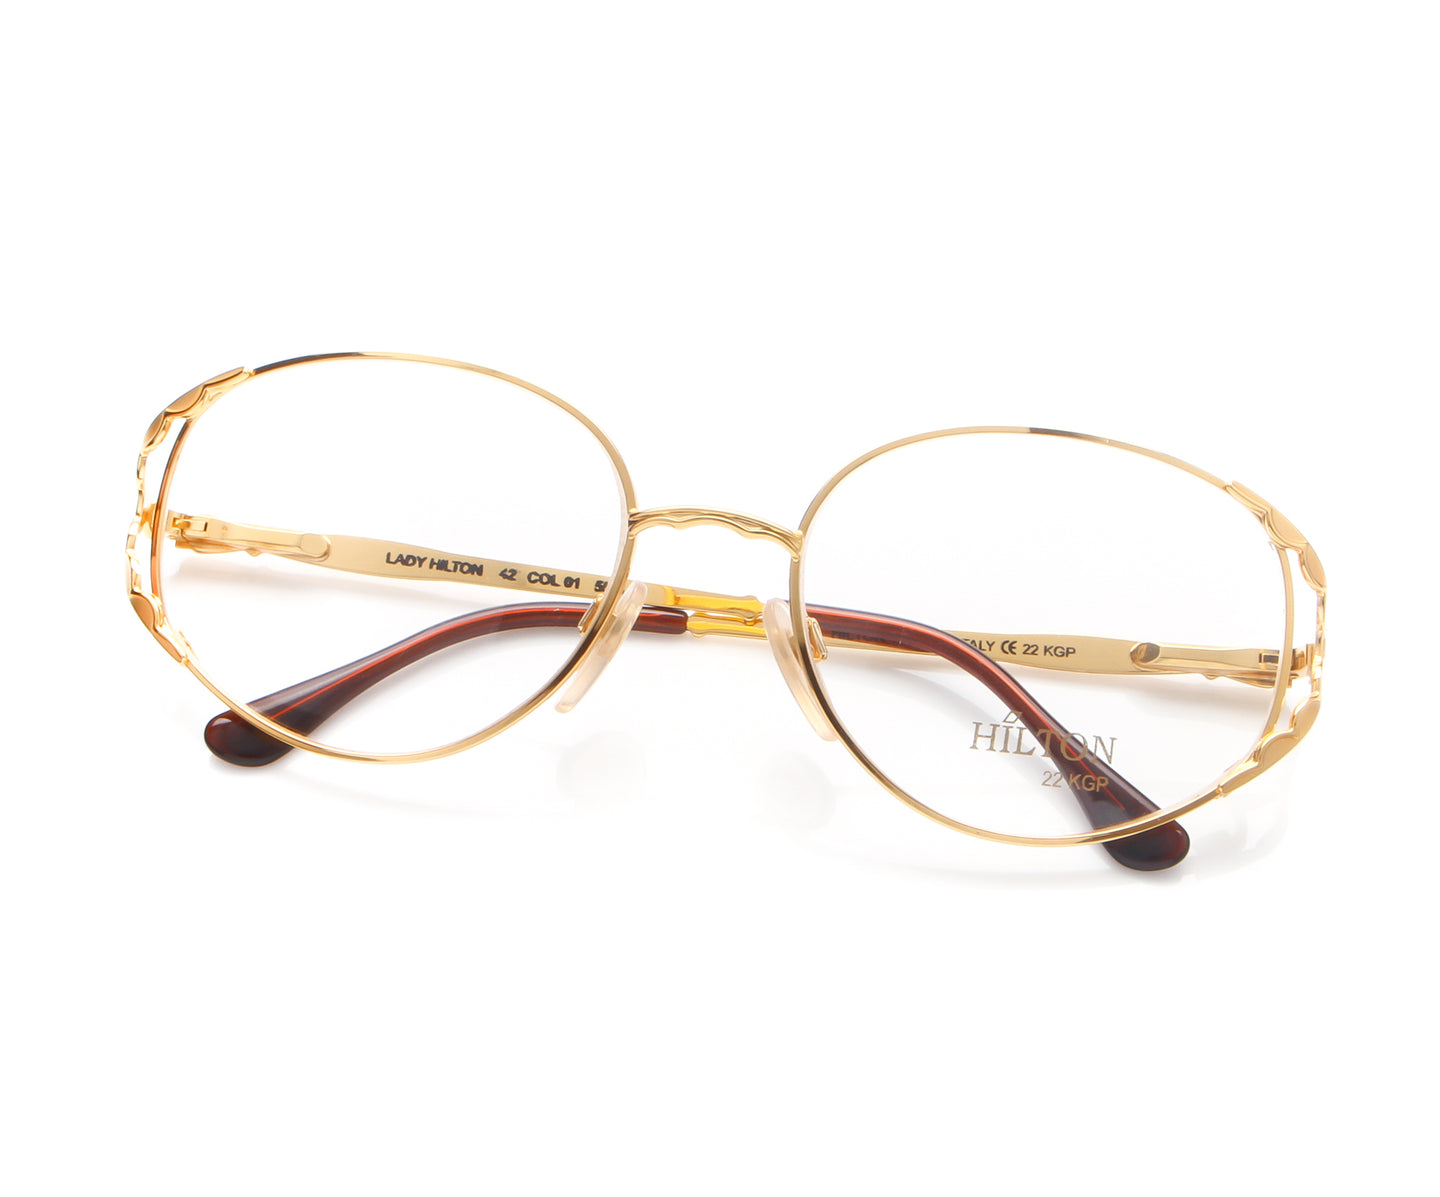 Vintage Hilton Lady Hilton 42 01 22 KGP Thumb, Hilton , glasses frames, eyeglasses online, eyeglass frames, mens glasses, womens glasses, buy glasses online, designer eyeglasses, vintage sunglasses, retro sunglasses, vintage glasses, sunglass, eyeglass, glasses, lens, vintage frames company, vf